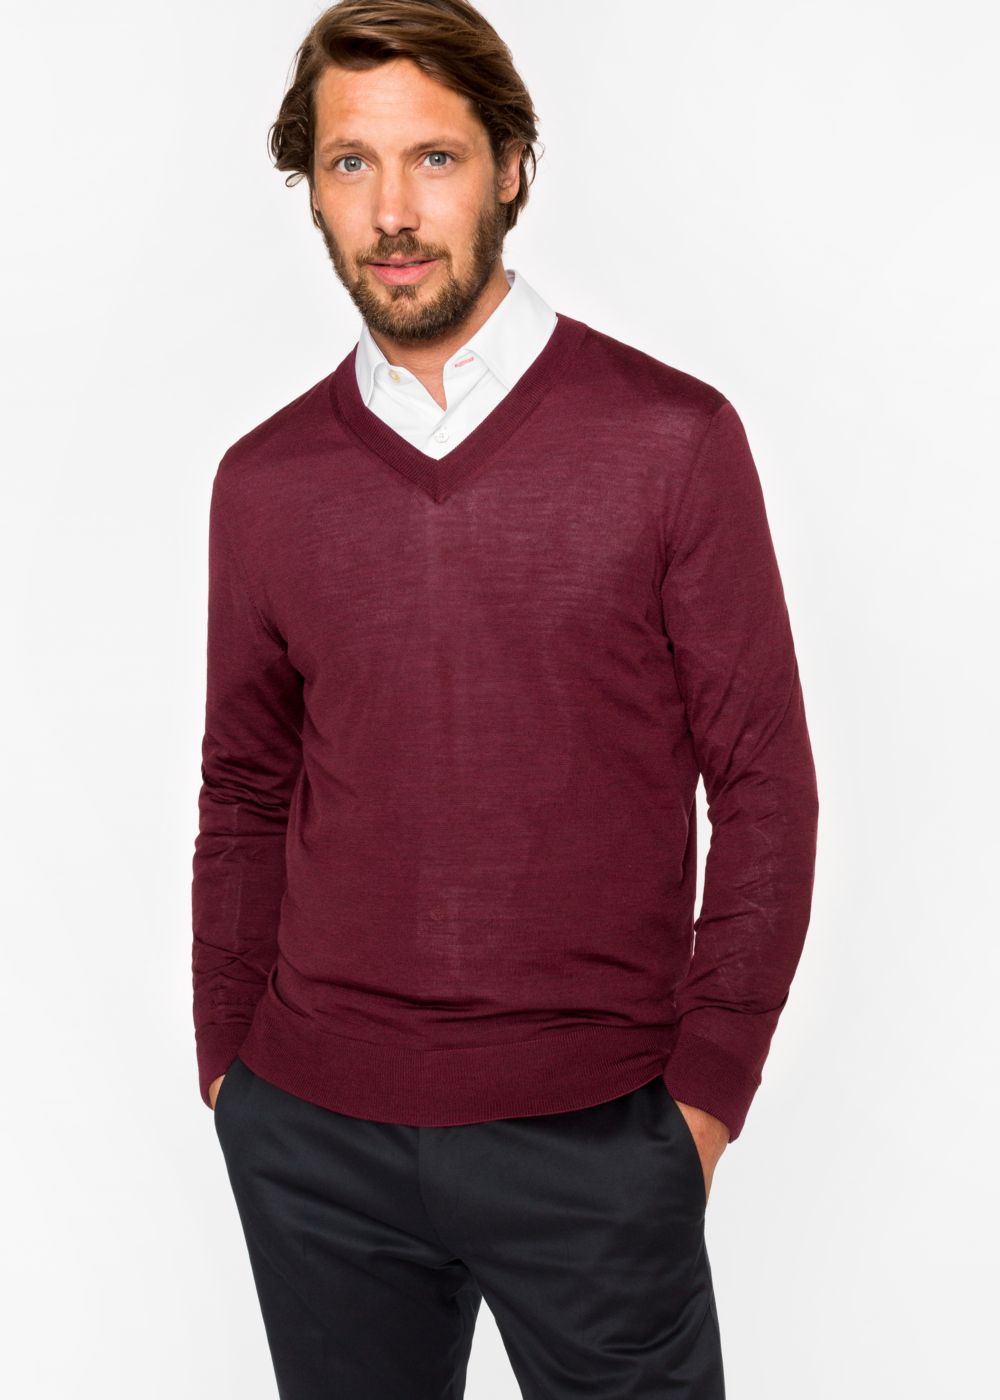 Paul Smith Men's Damson Merino Wool V-Neck Sweater